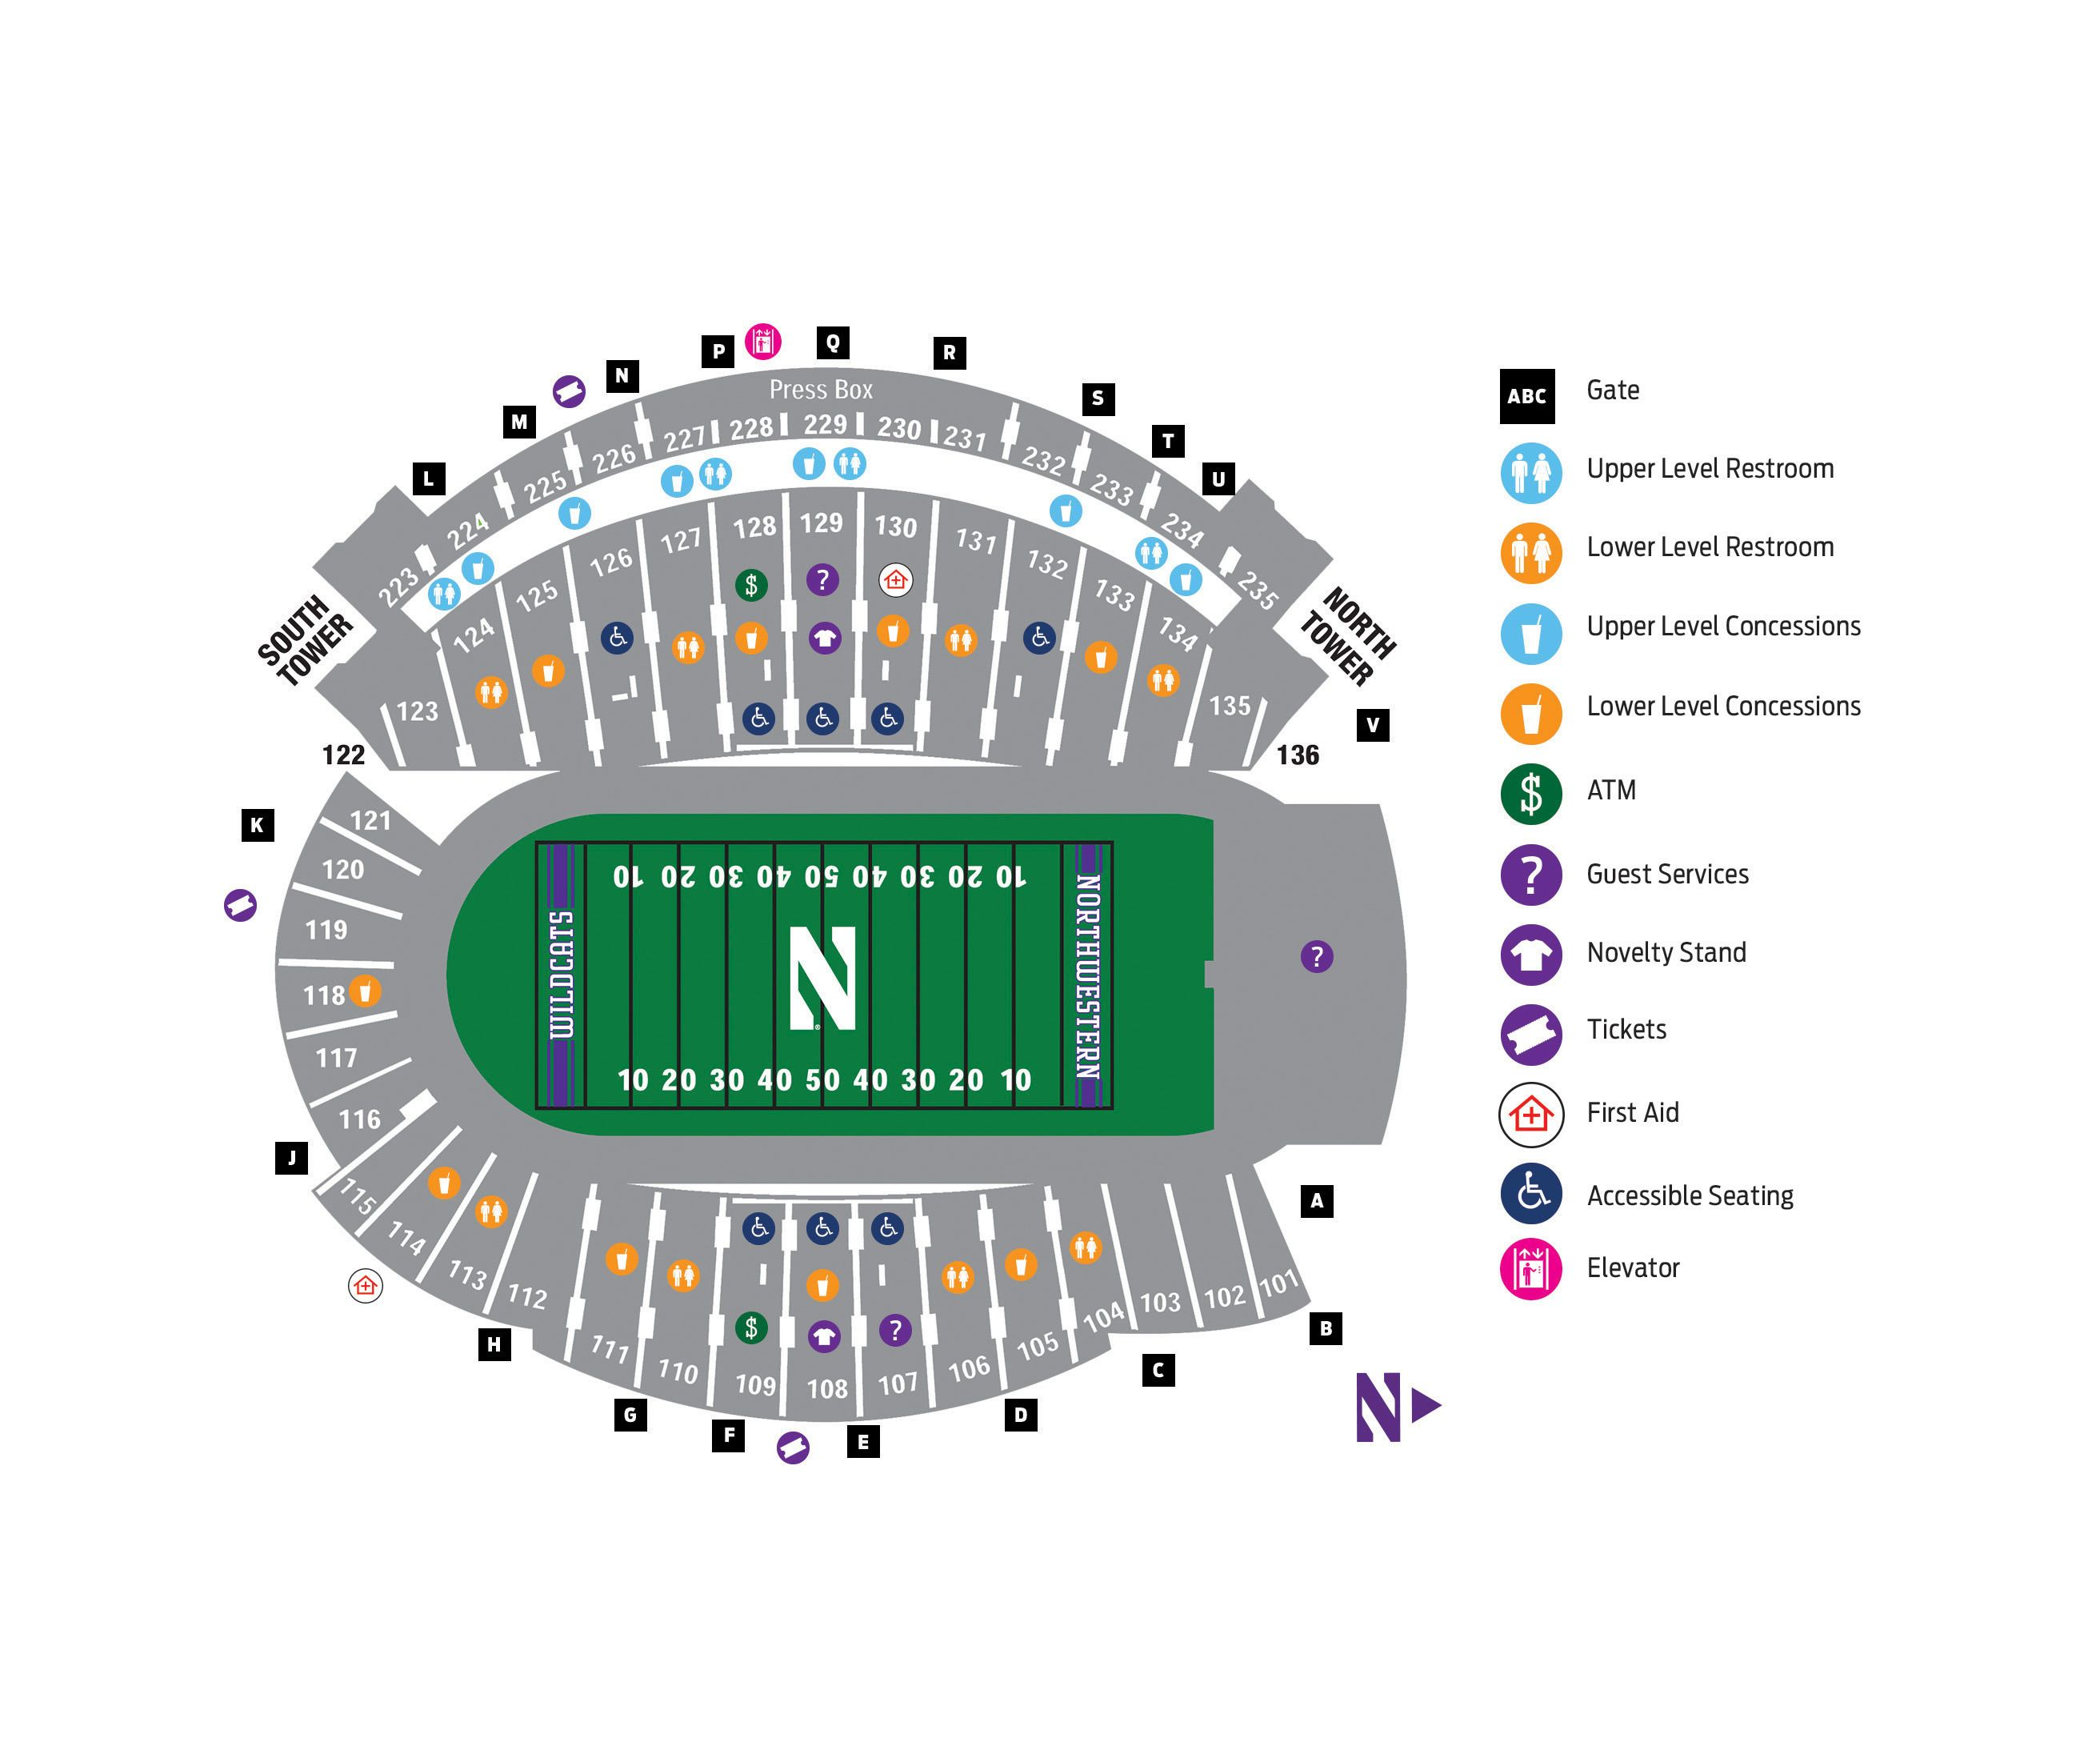 northwestern university football stadium seating chart Google Search Stadiums I have sat in Pinterest